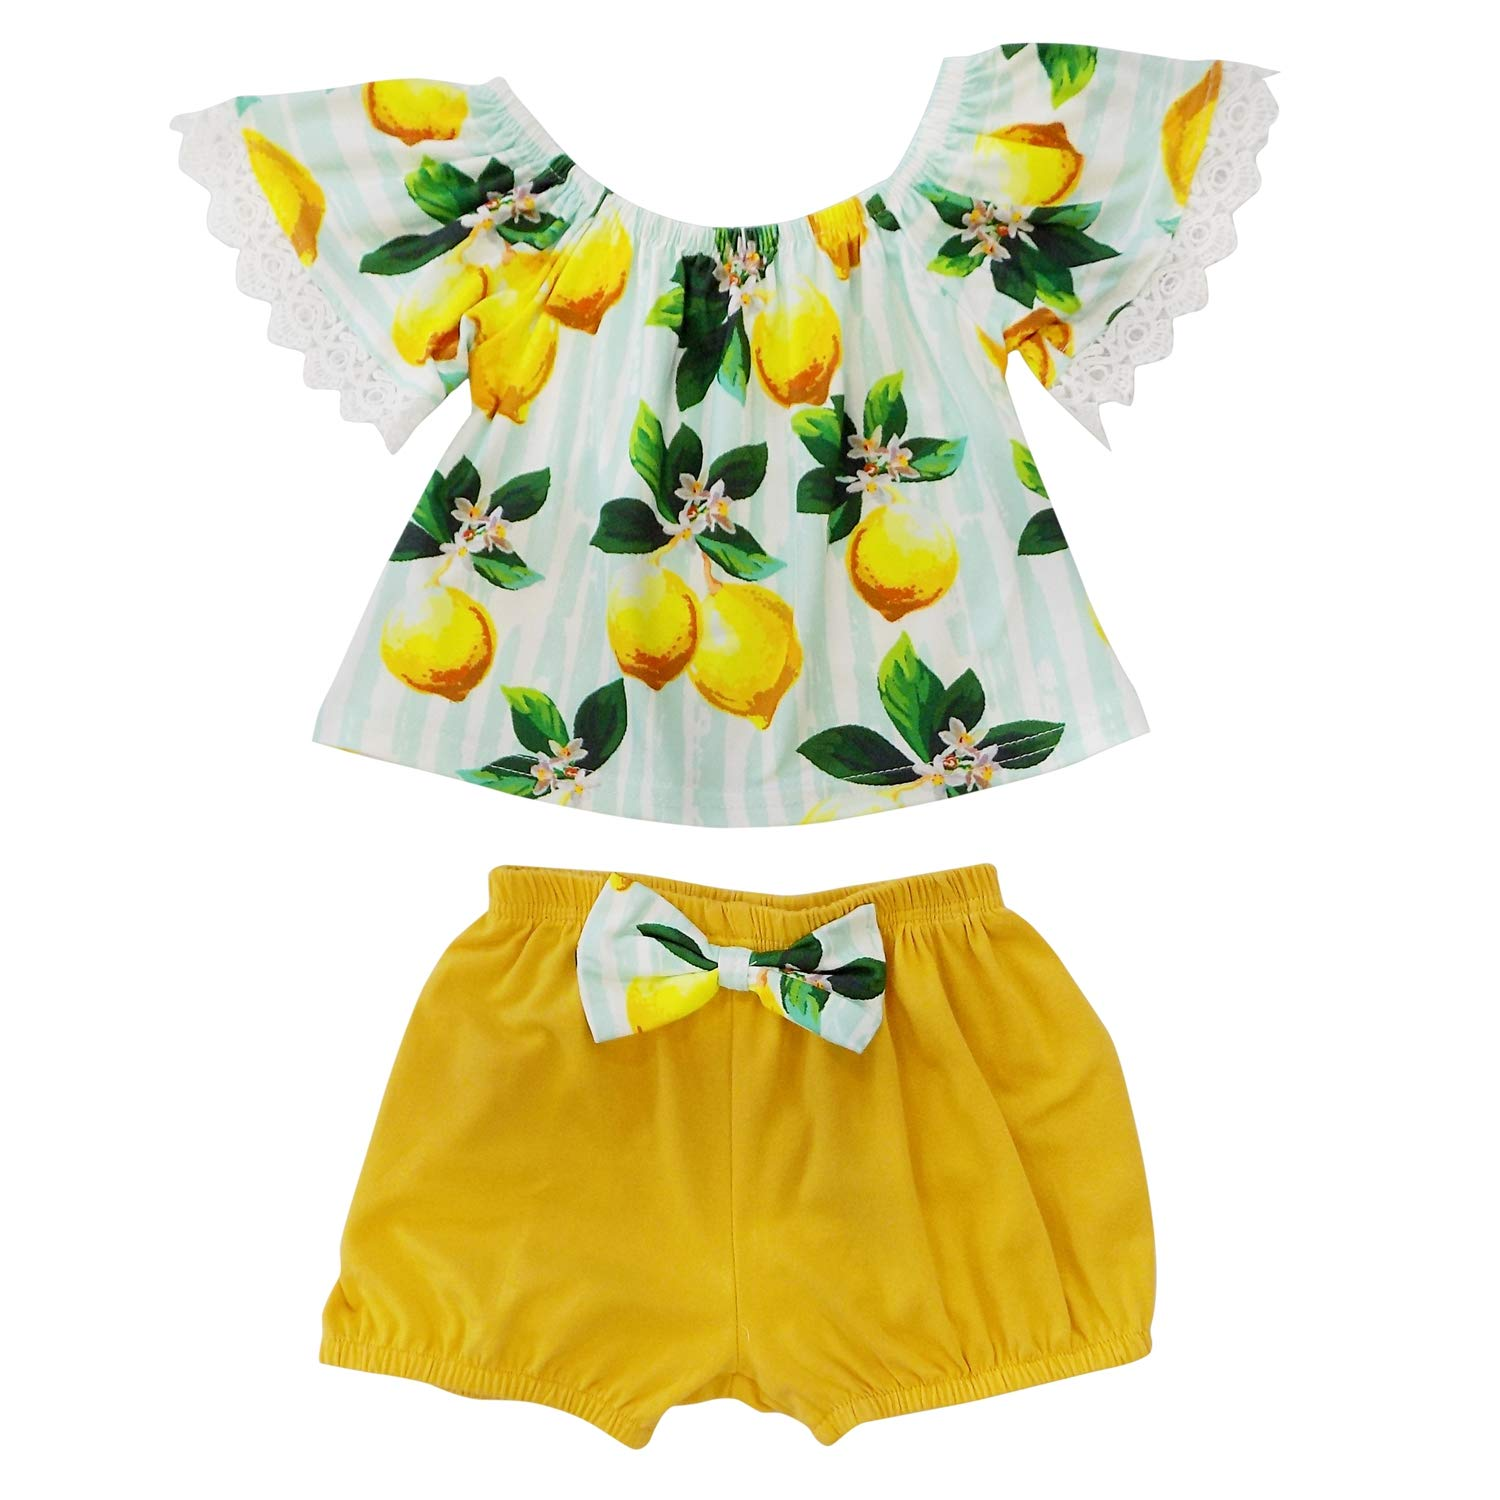 So Sydney Girls or Toddler Shorts Outfit Boutique Cute Clothing High Waist Tie Top Suede Shorts Set